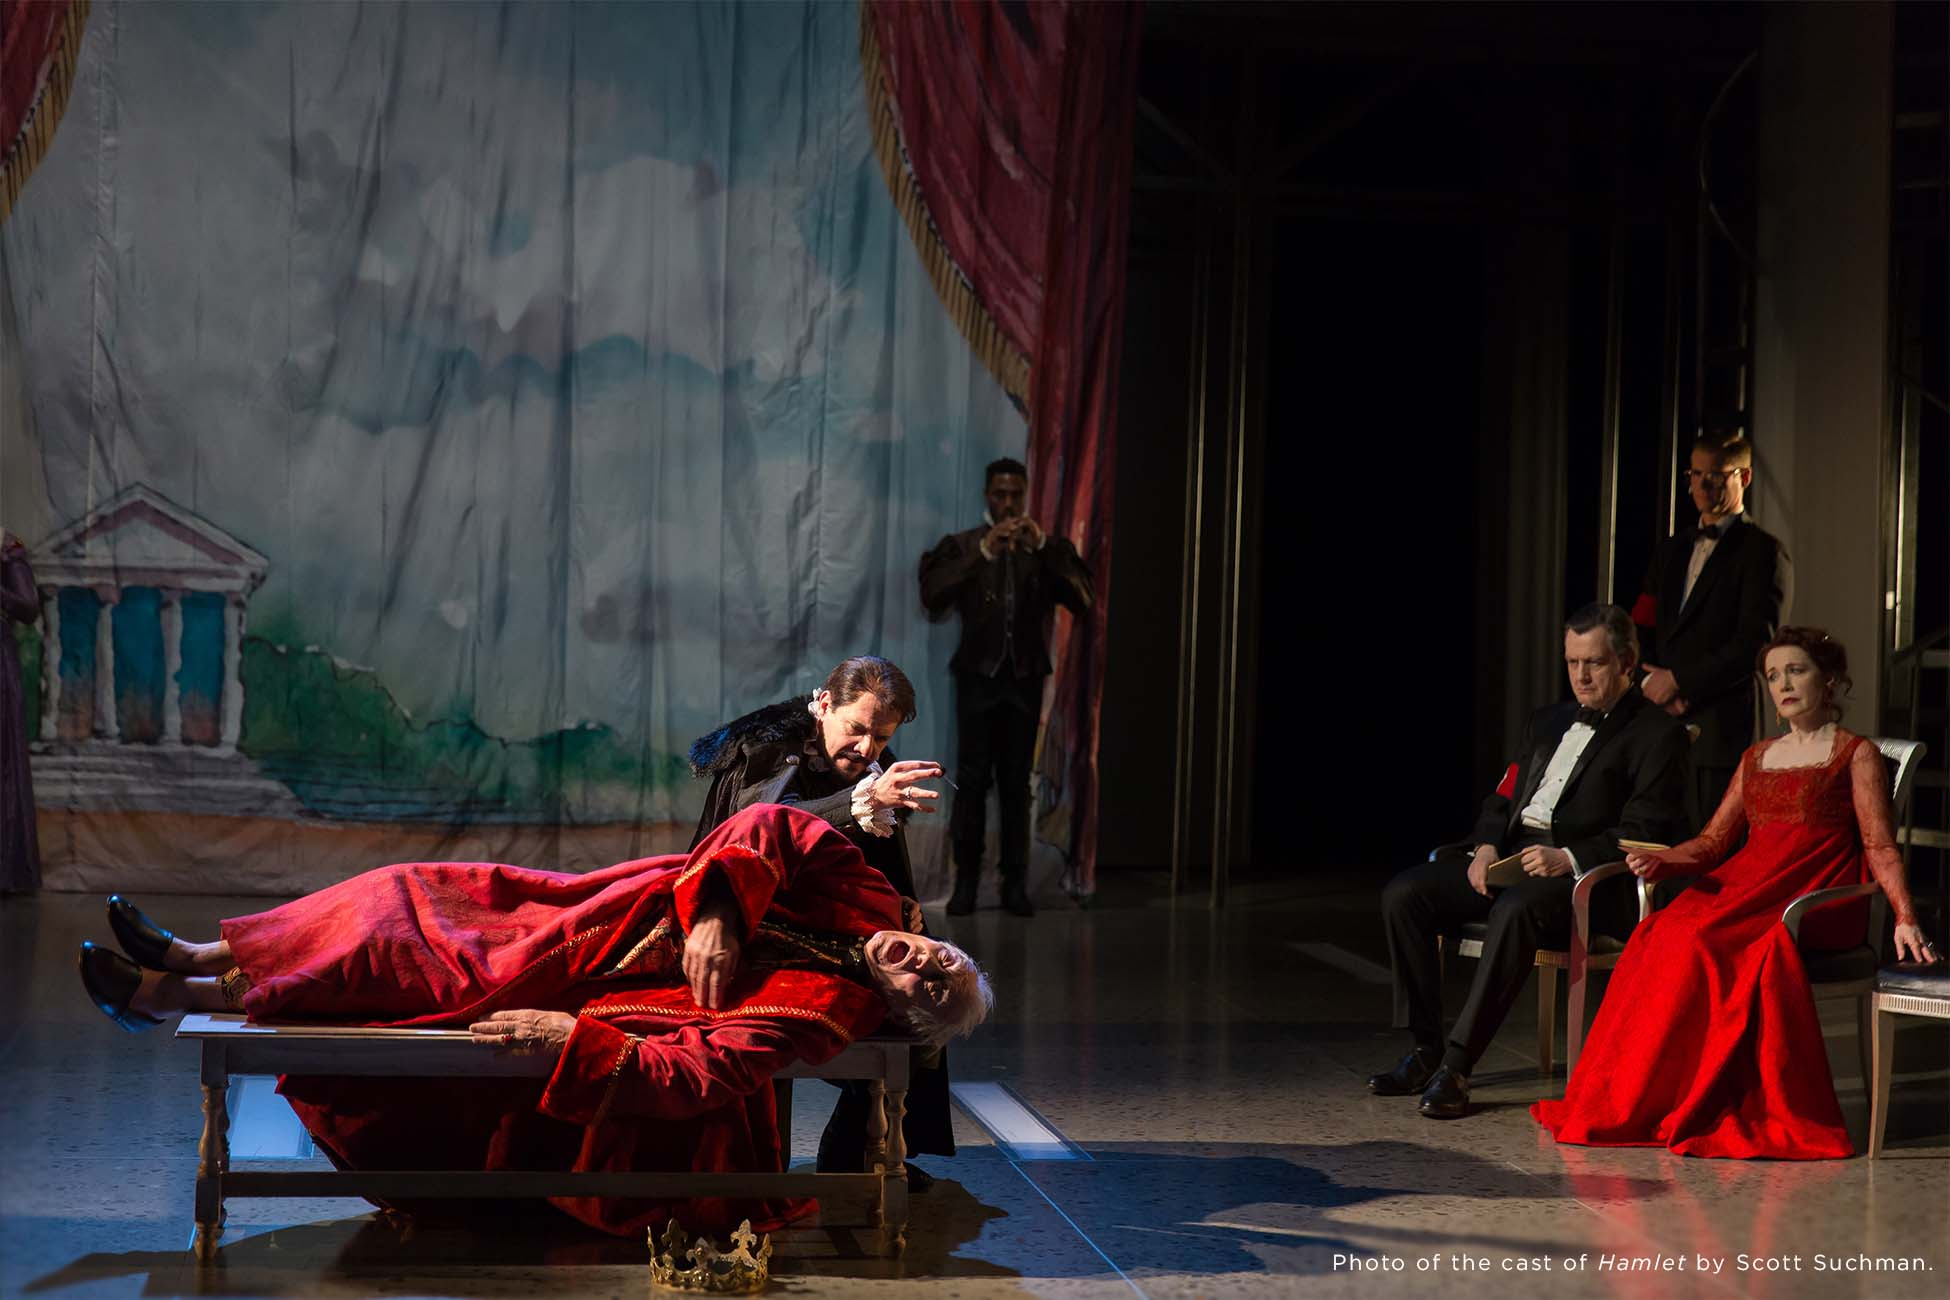 Photo of the cast of Hamlet by Scott Suchman.